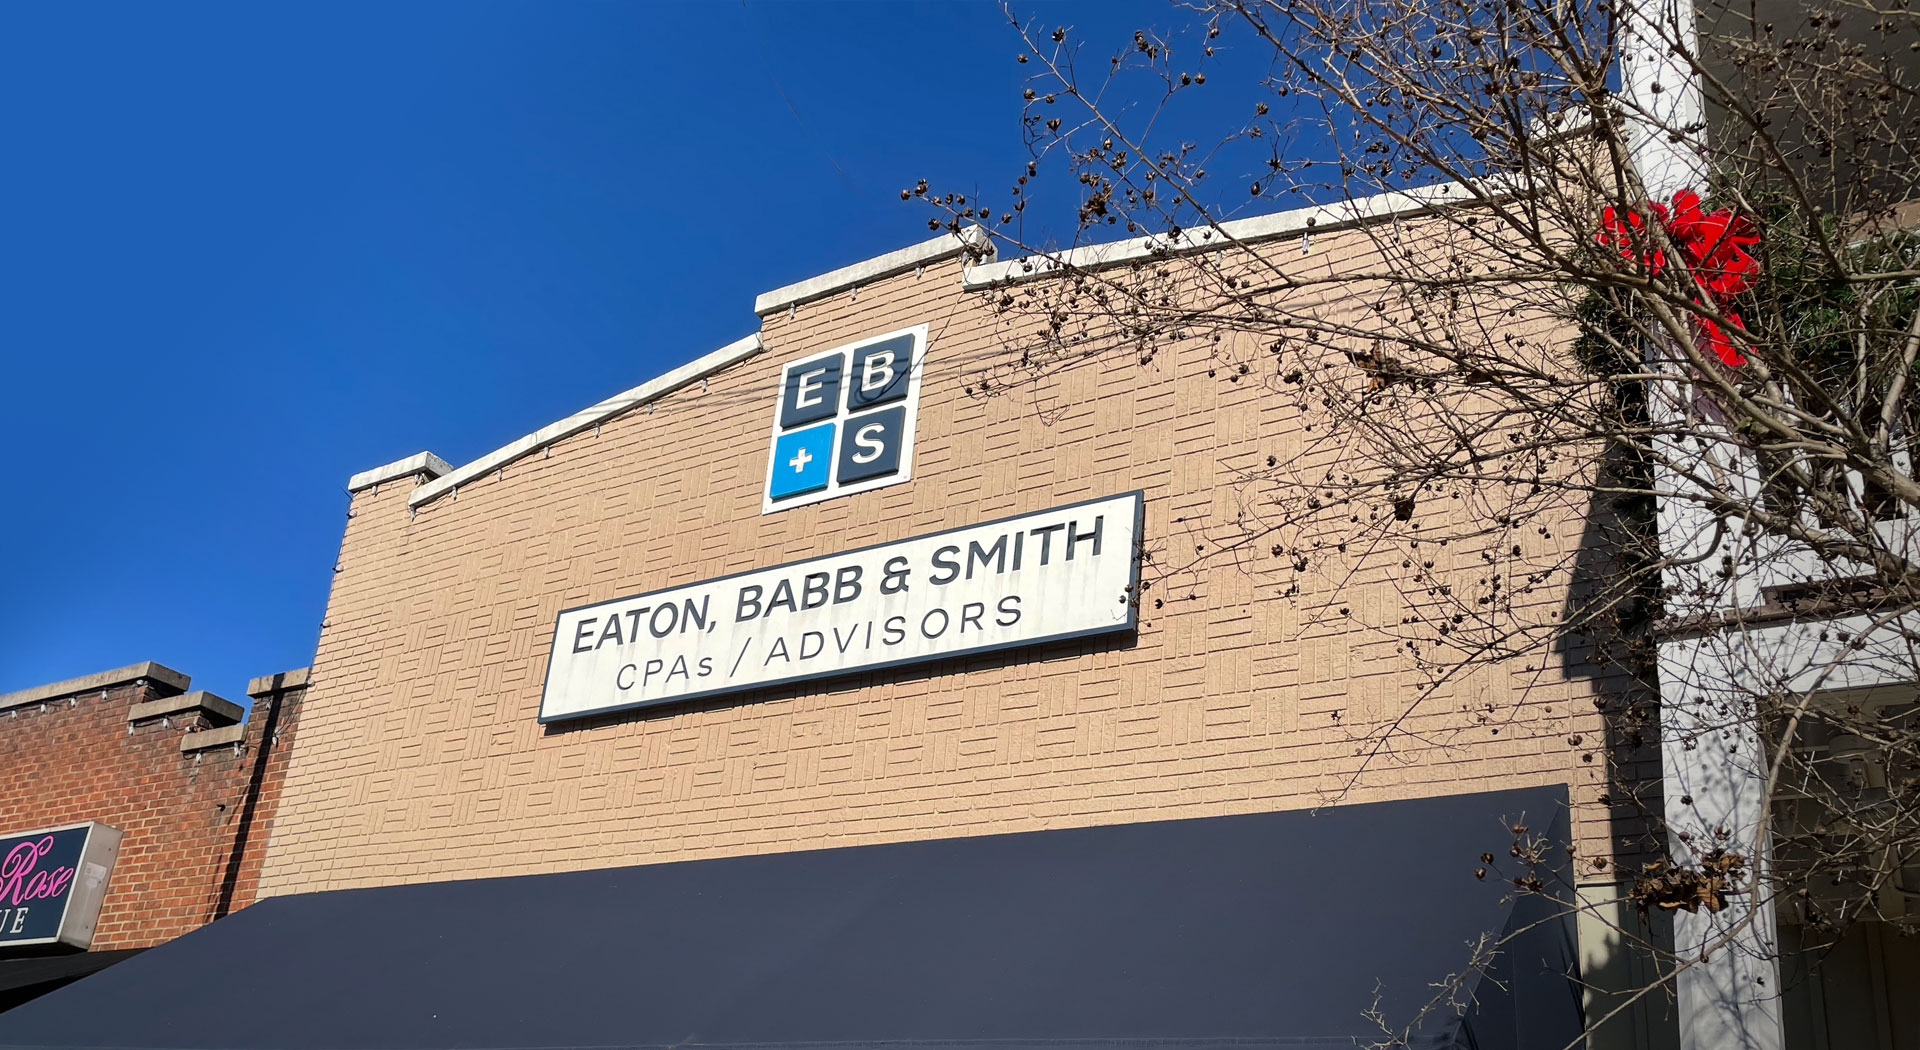 Eaton, Babb and Smith of New Albany, MS